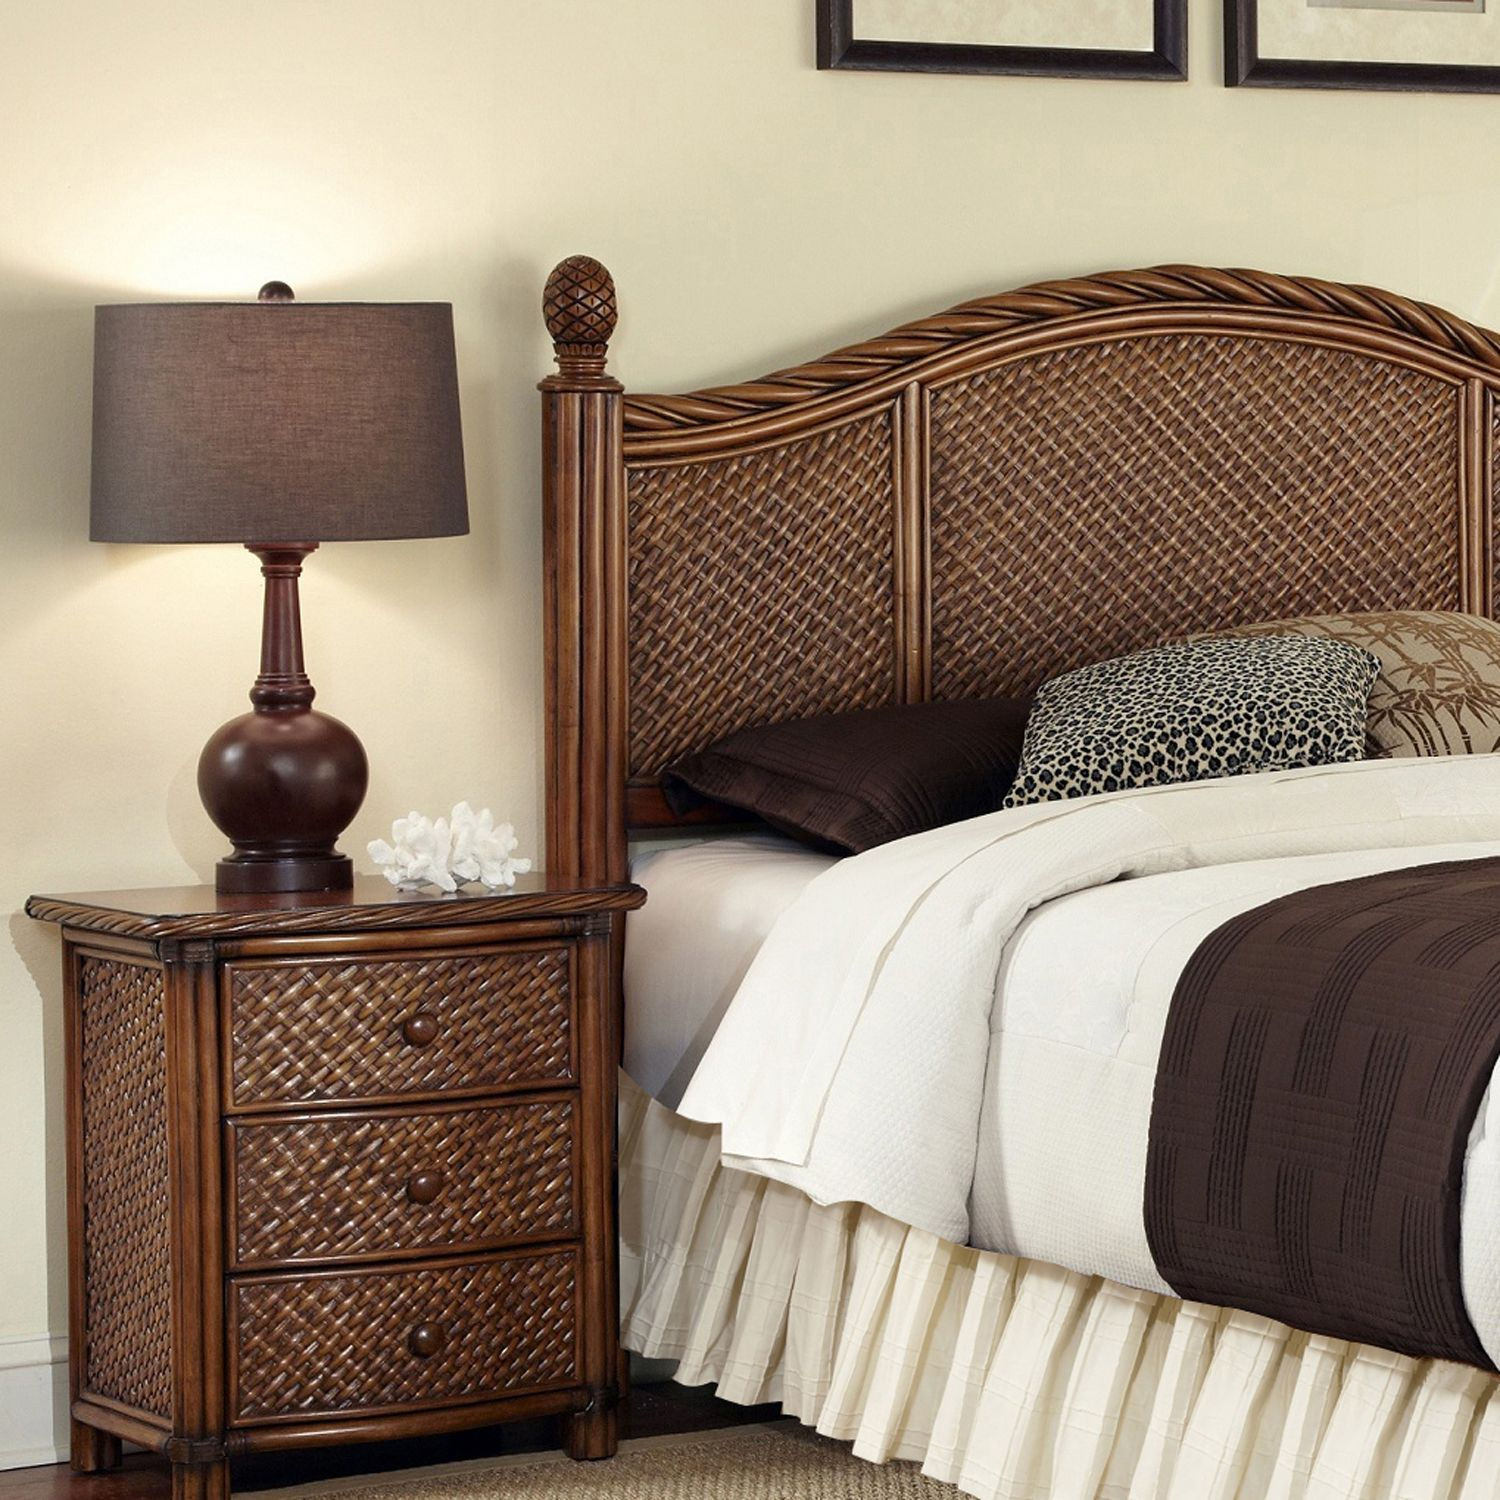 Marvelous Queen Full Headboard u Nightstand Set